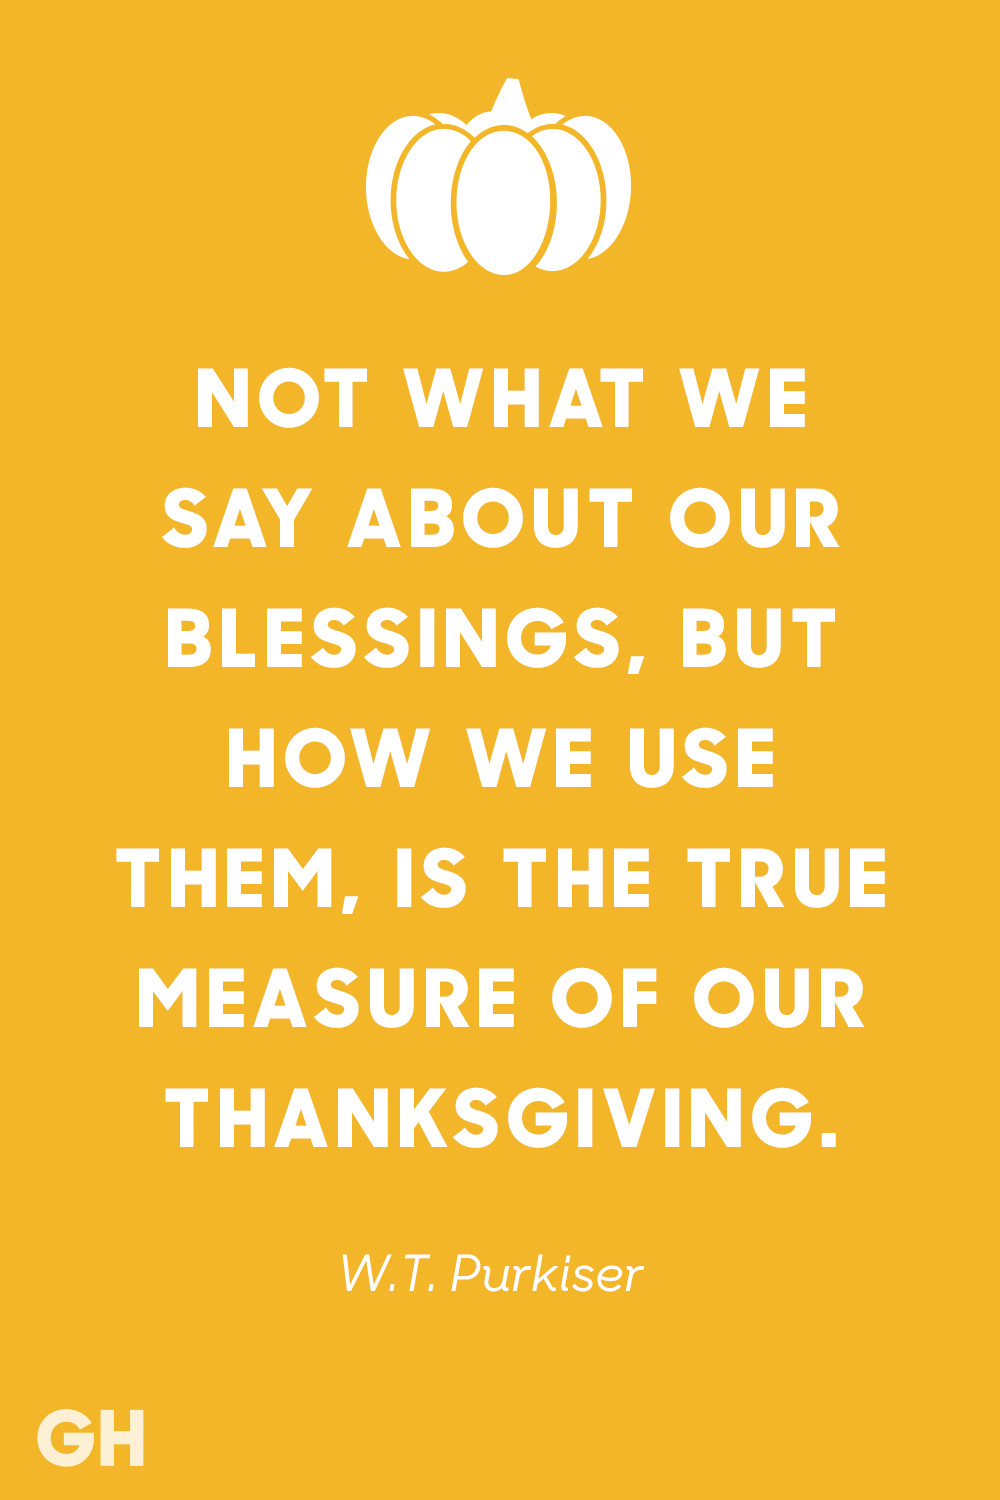 Thanksgiving Quotes  15 Best Thanksgiving Quotes Inspirational and Funny